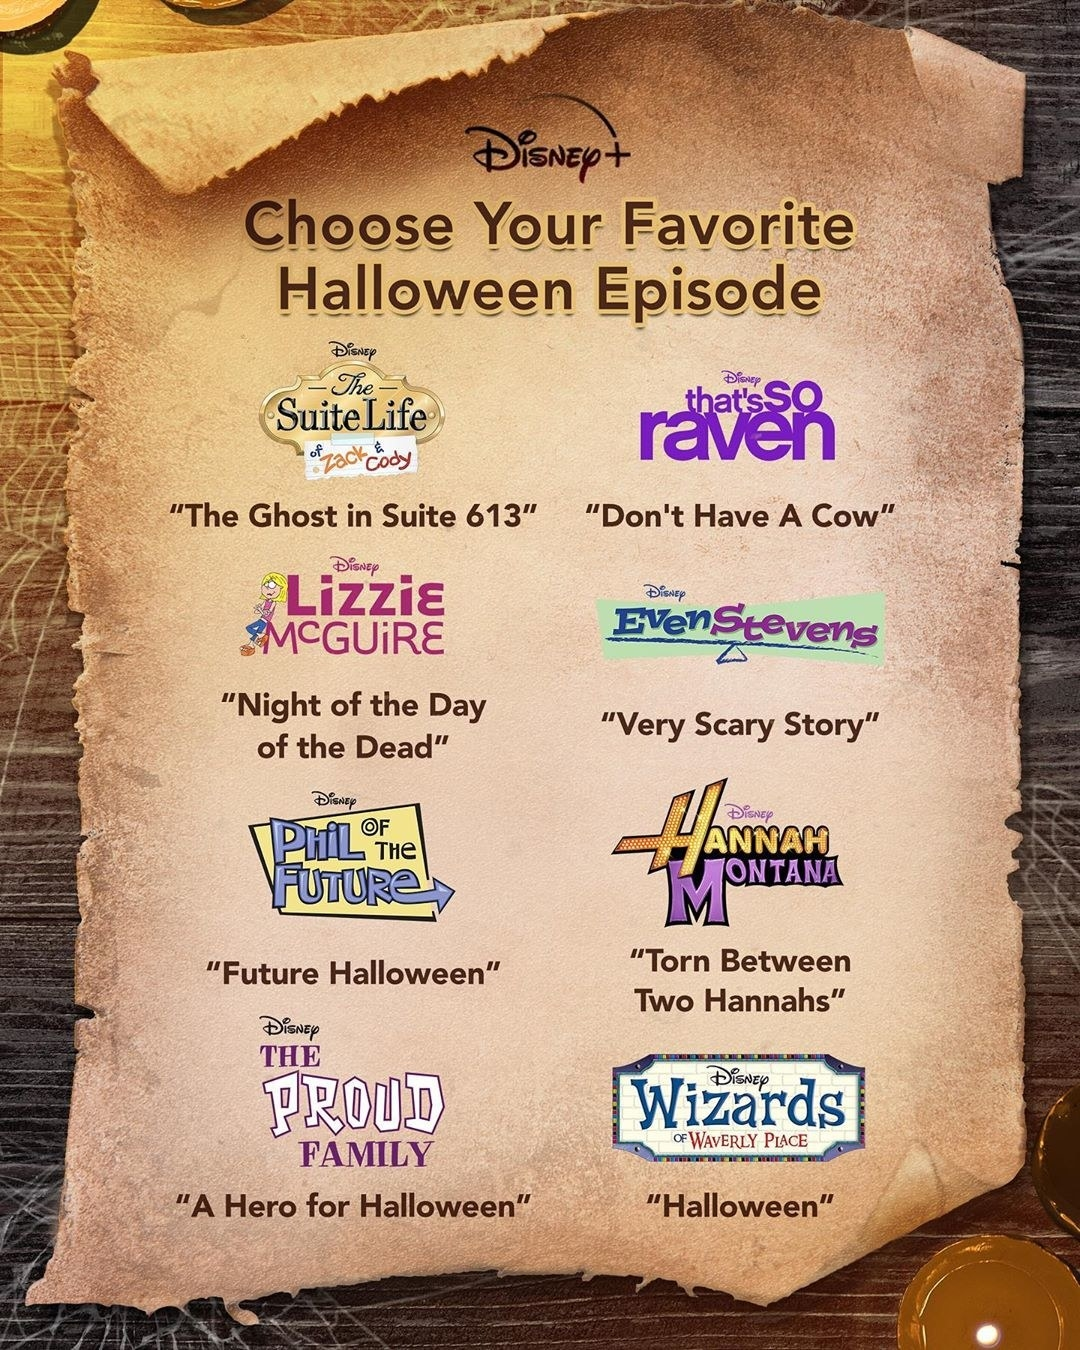 a list of the various halloween episodes from popular disney channel shows